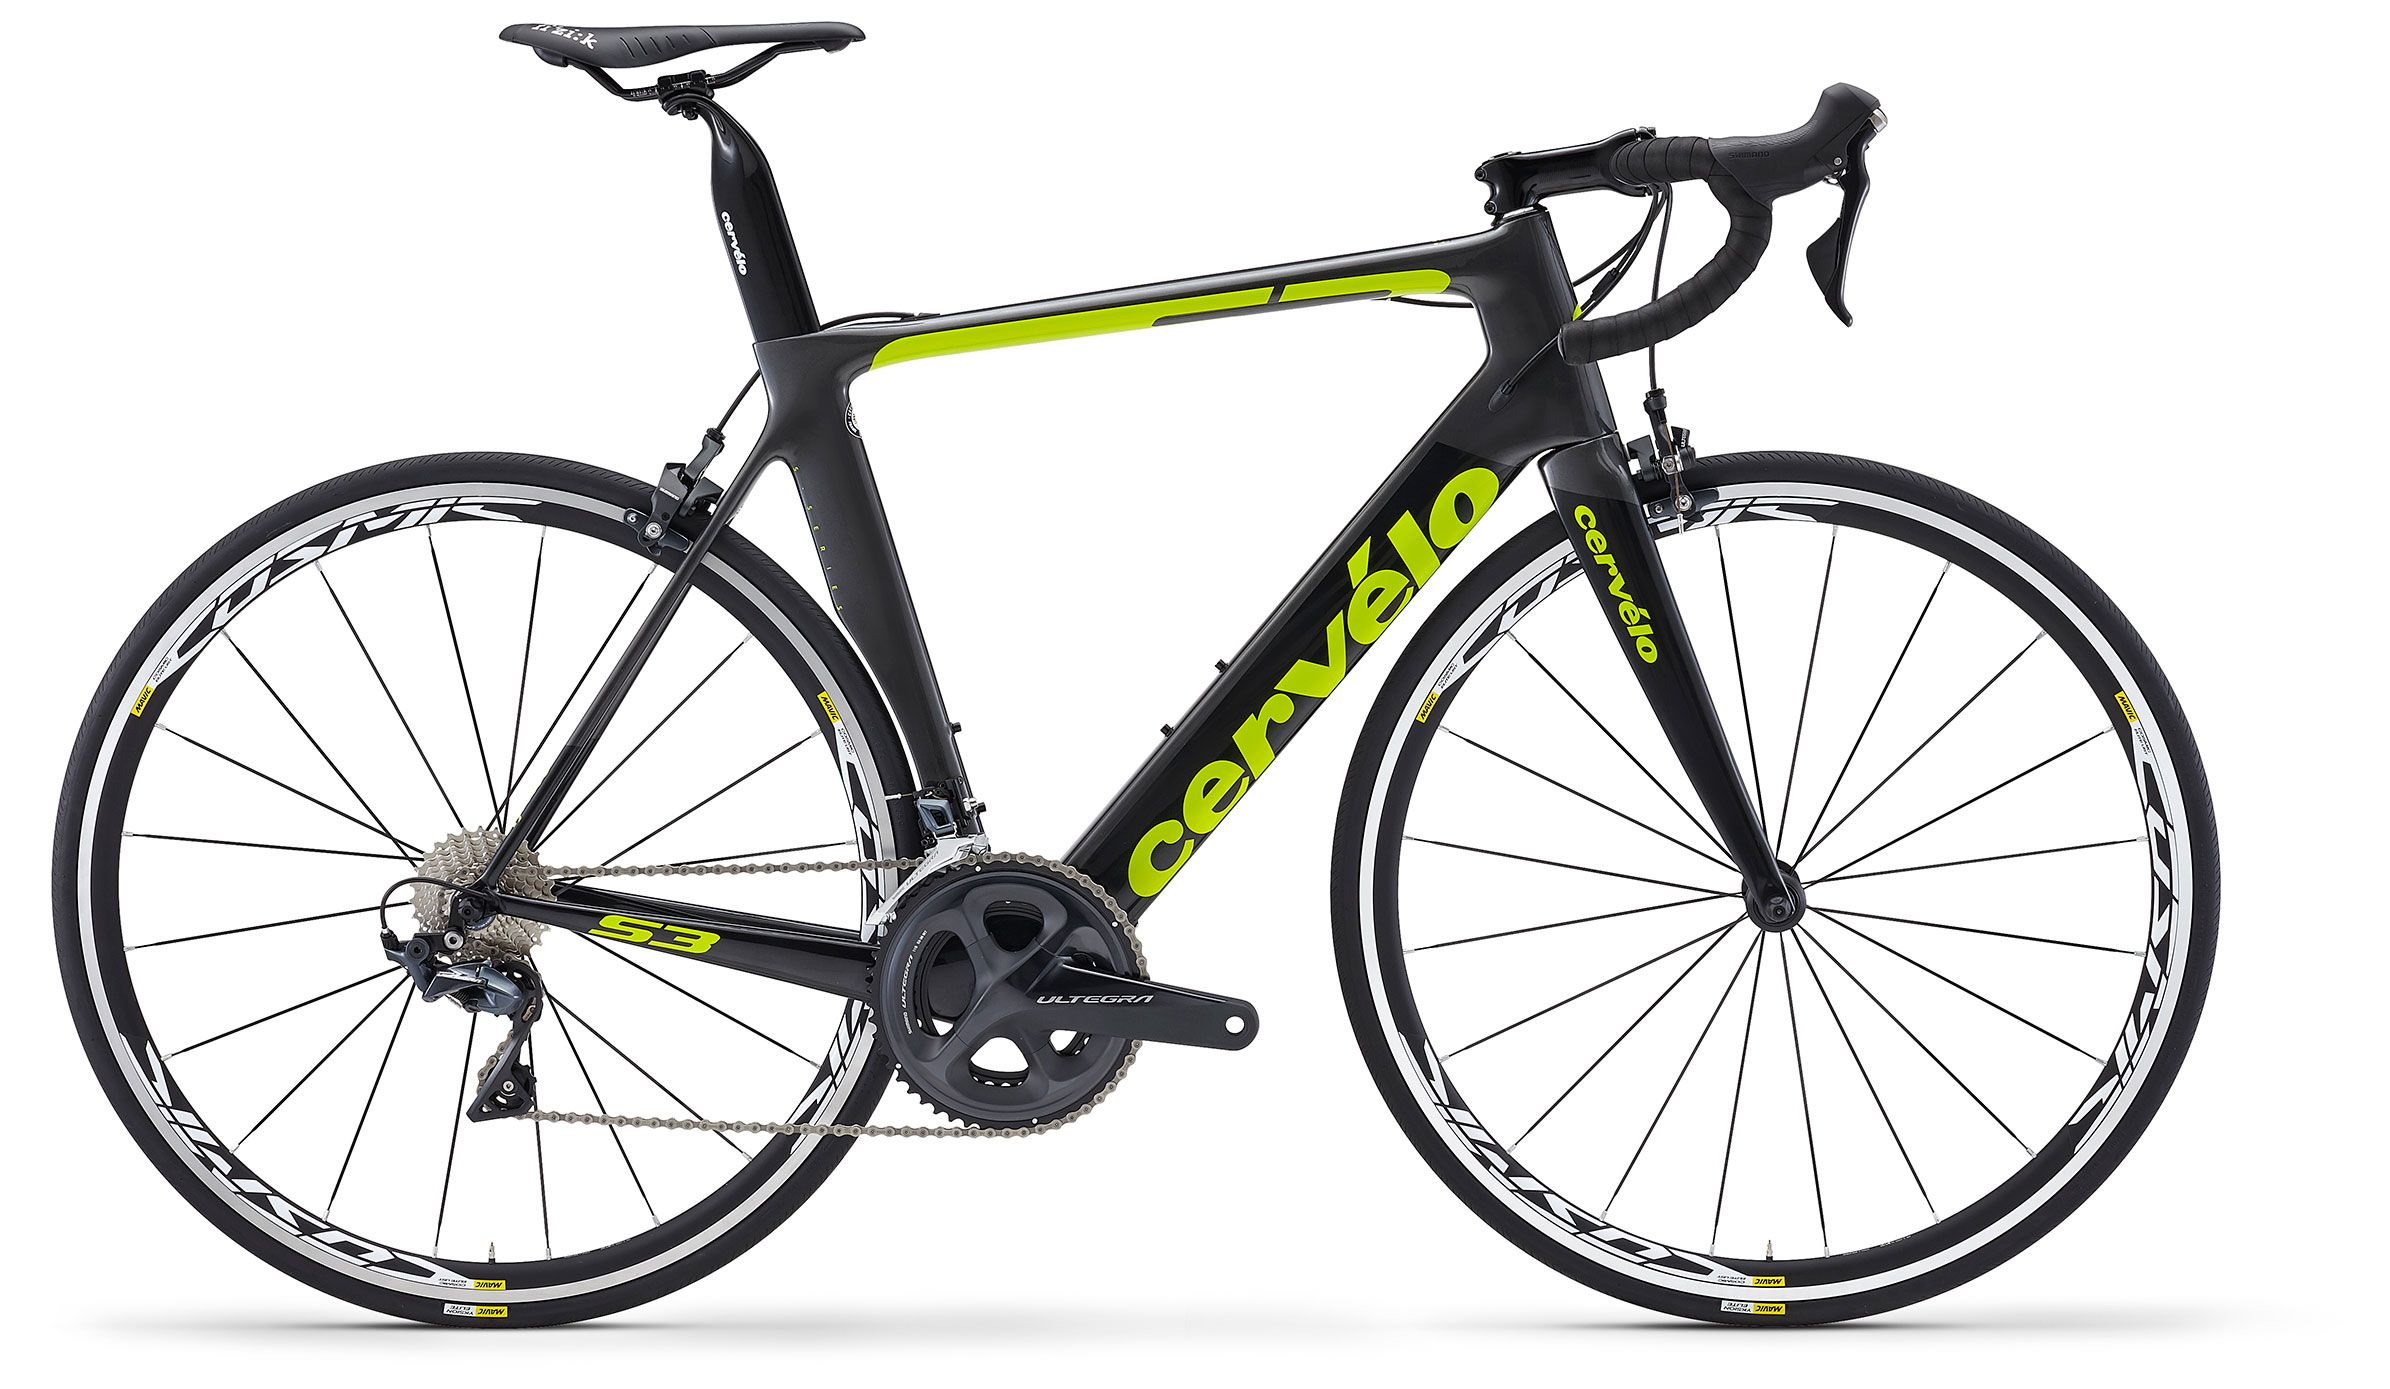 Велосипед Cervelo S3 Ultegra 2018 велосипед cannondale supersix evo ultegra 3 2016